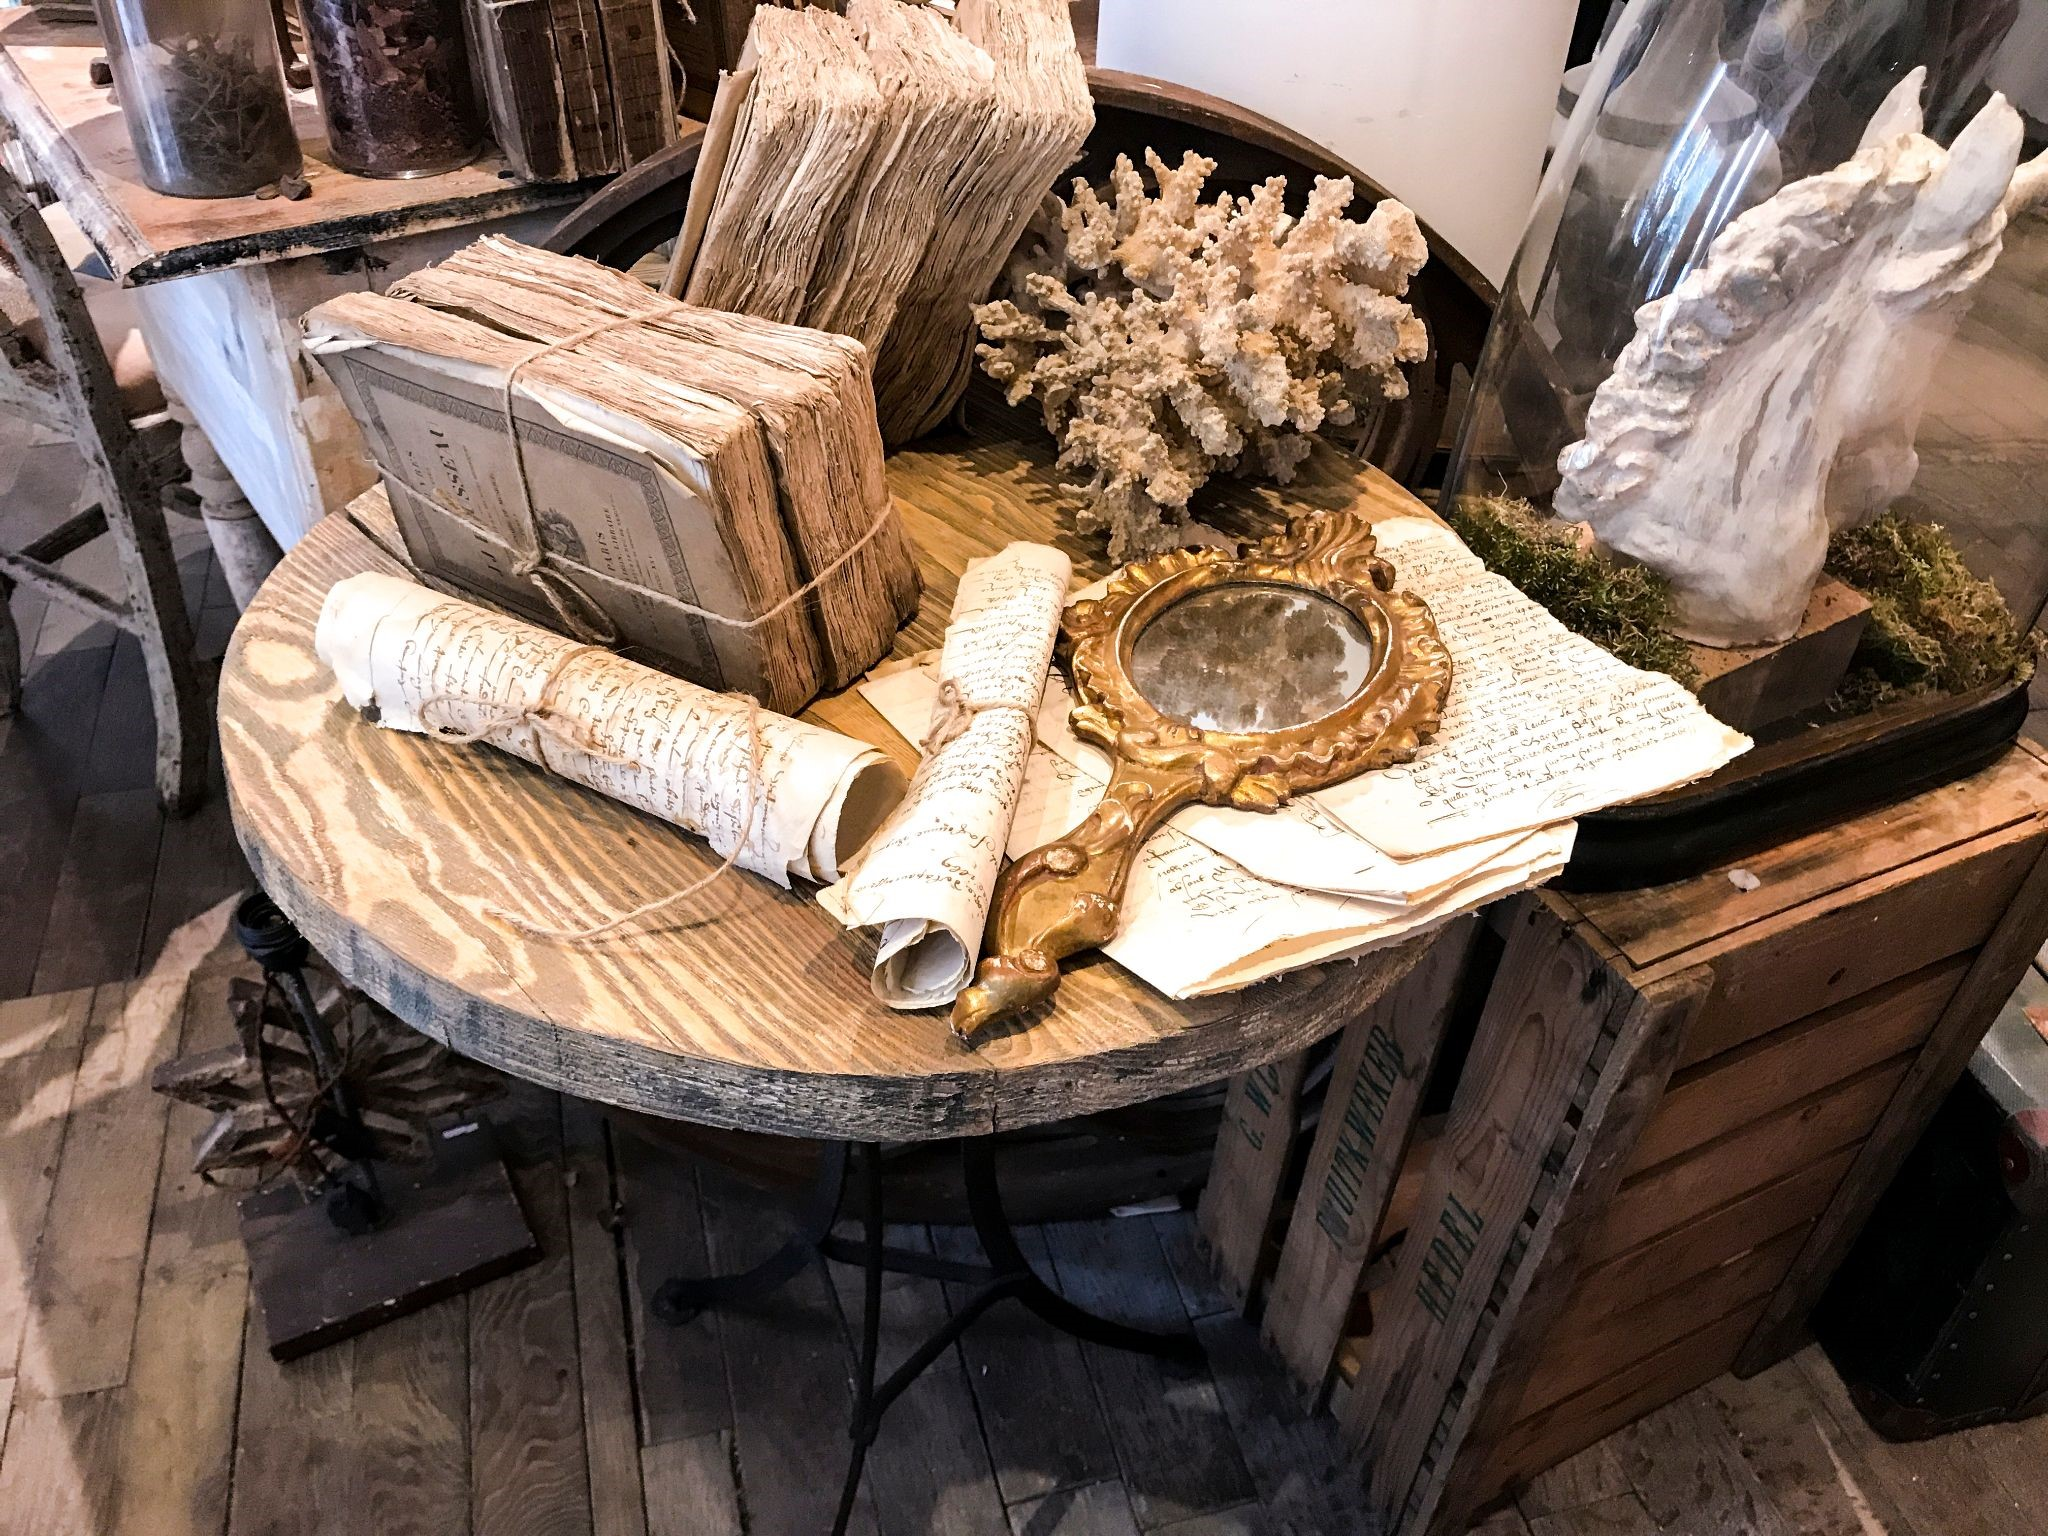 Natural colored wooden table surrounded by antique books, aged mirrors, dried florals, and ceramic decor.